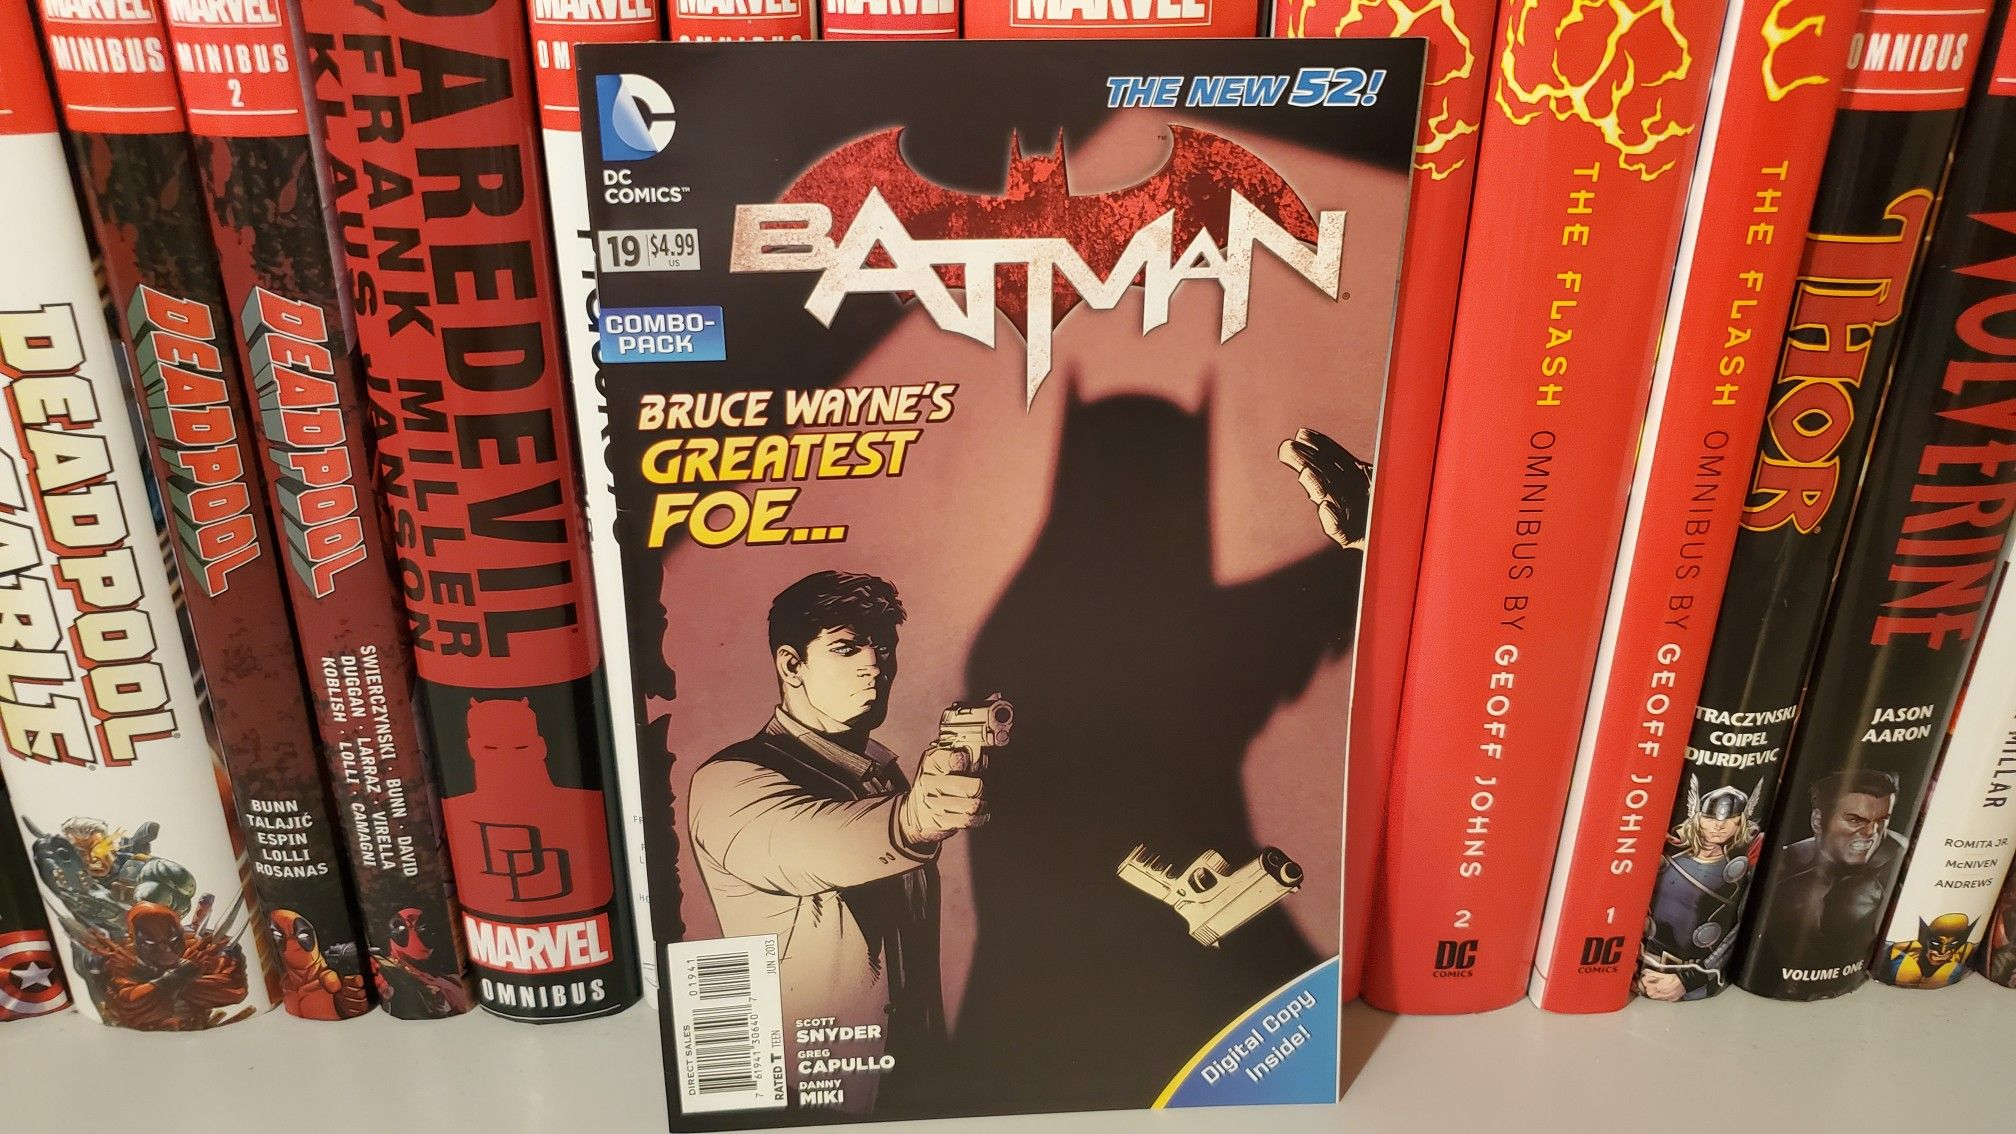 Batman Vol 2 Issue 19 Overview Video Https M Youtube Com Watch V Drlaifadicy Dccomics Jla Justiceleague B In 2020 Comic Book Collection Marvel Omnibus Bc Comics